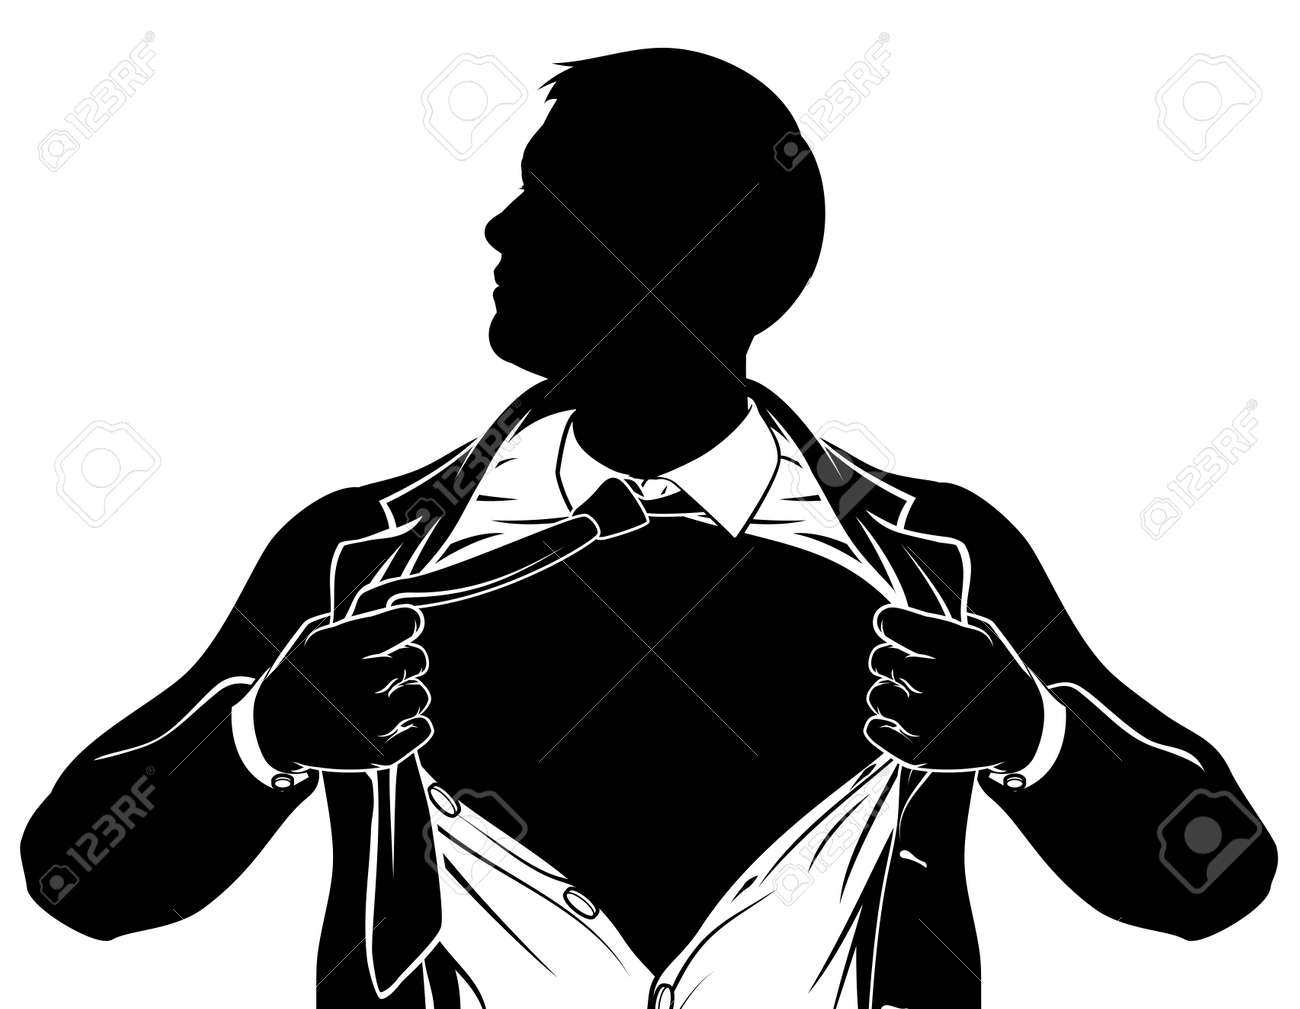 a superhero business man tearing his shirt showing the chest